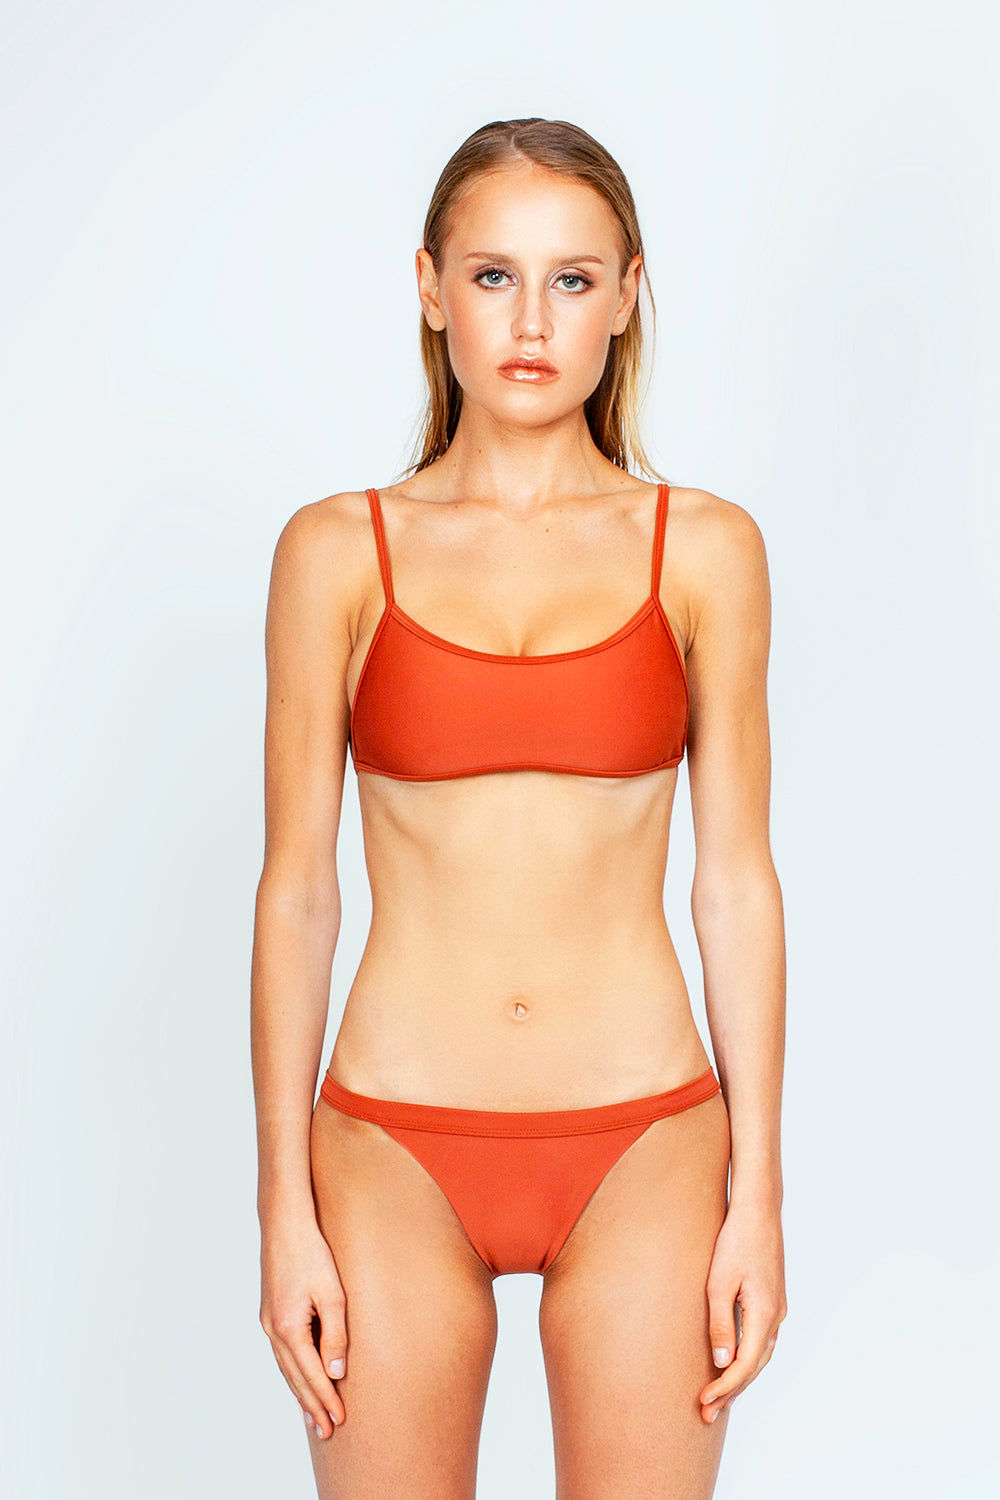 THE ONES WHO Ava Sporty Bikini Top - Copper Orange Bikini Top | Copper Orange| The Ones Who Ava Sporty Bikini Top - Copper Orange Sporty and minimal top Adjustable shoulder straps Self-tie back Fully lined with no cups Made in LA  Fabric: 80% Nylon 20% Elastane Front View